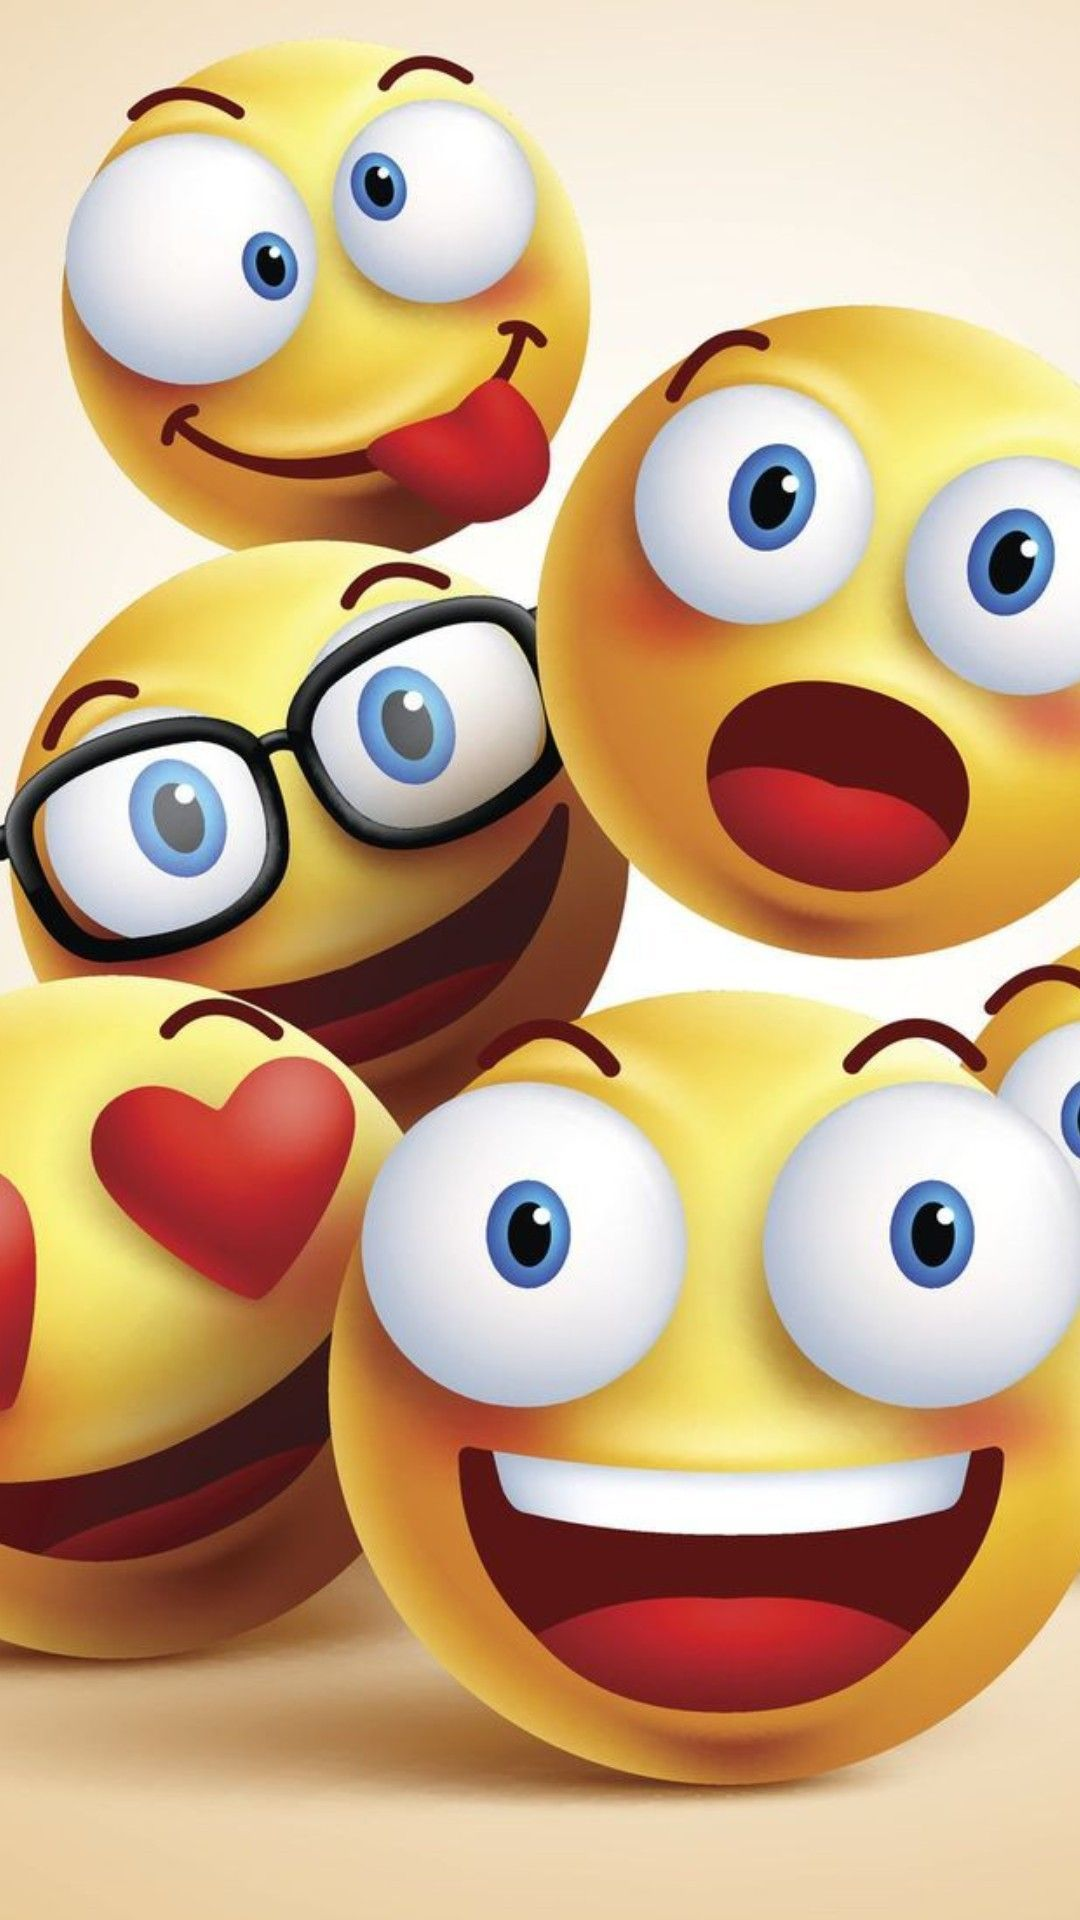 Emoji Background Hupages Download Iphone Wallpapers Emoji Backgrounds Emoji Wallpaper Cute Emoji Wallpaper